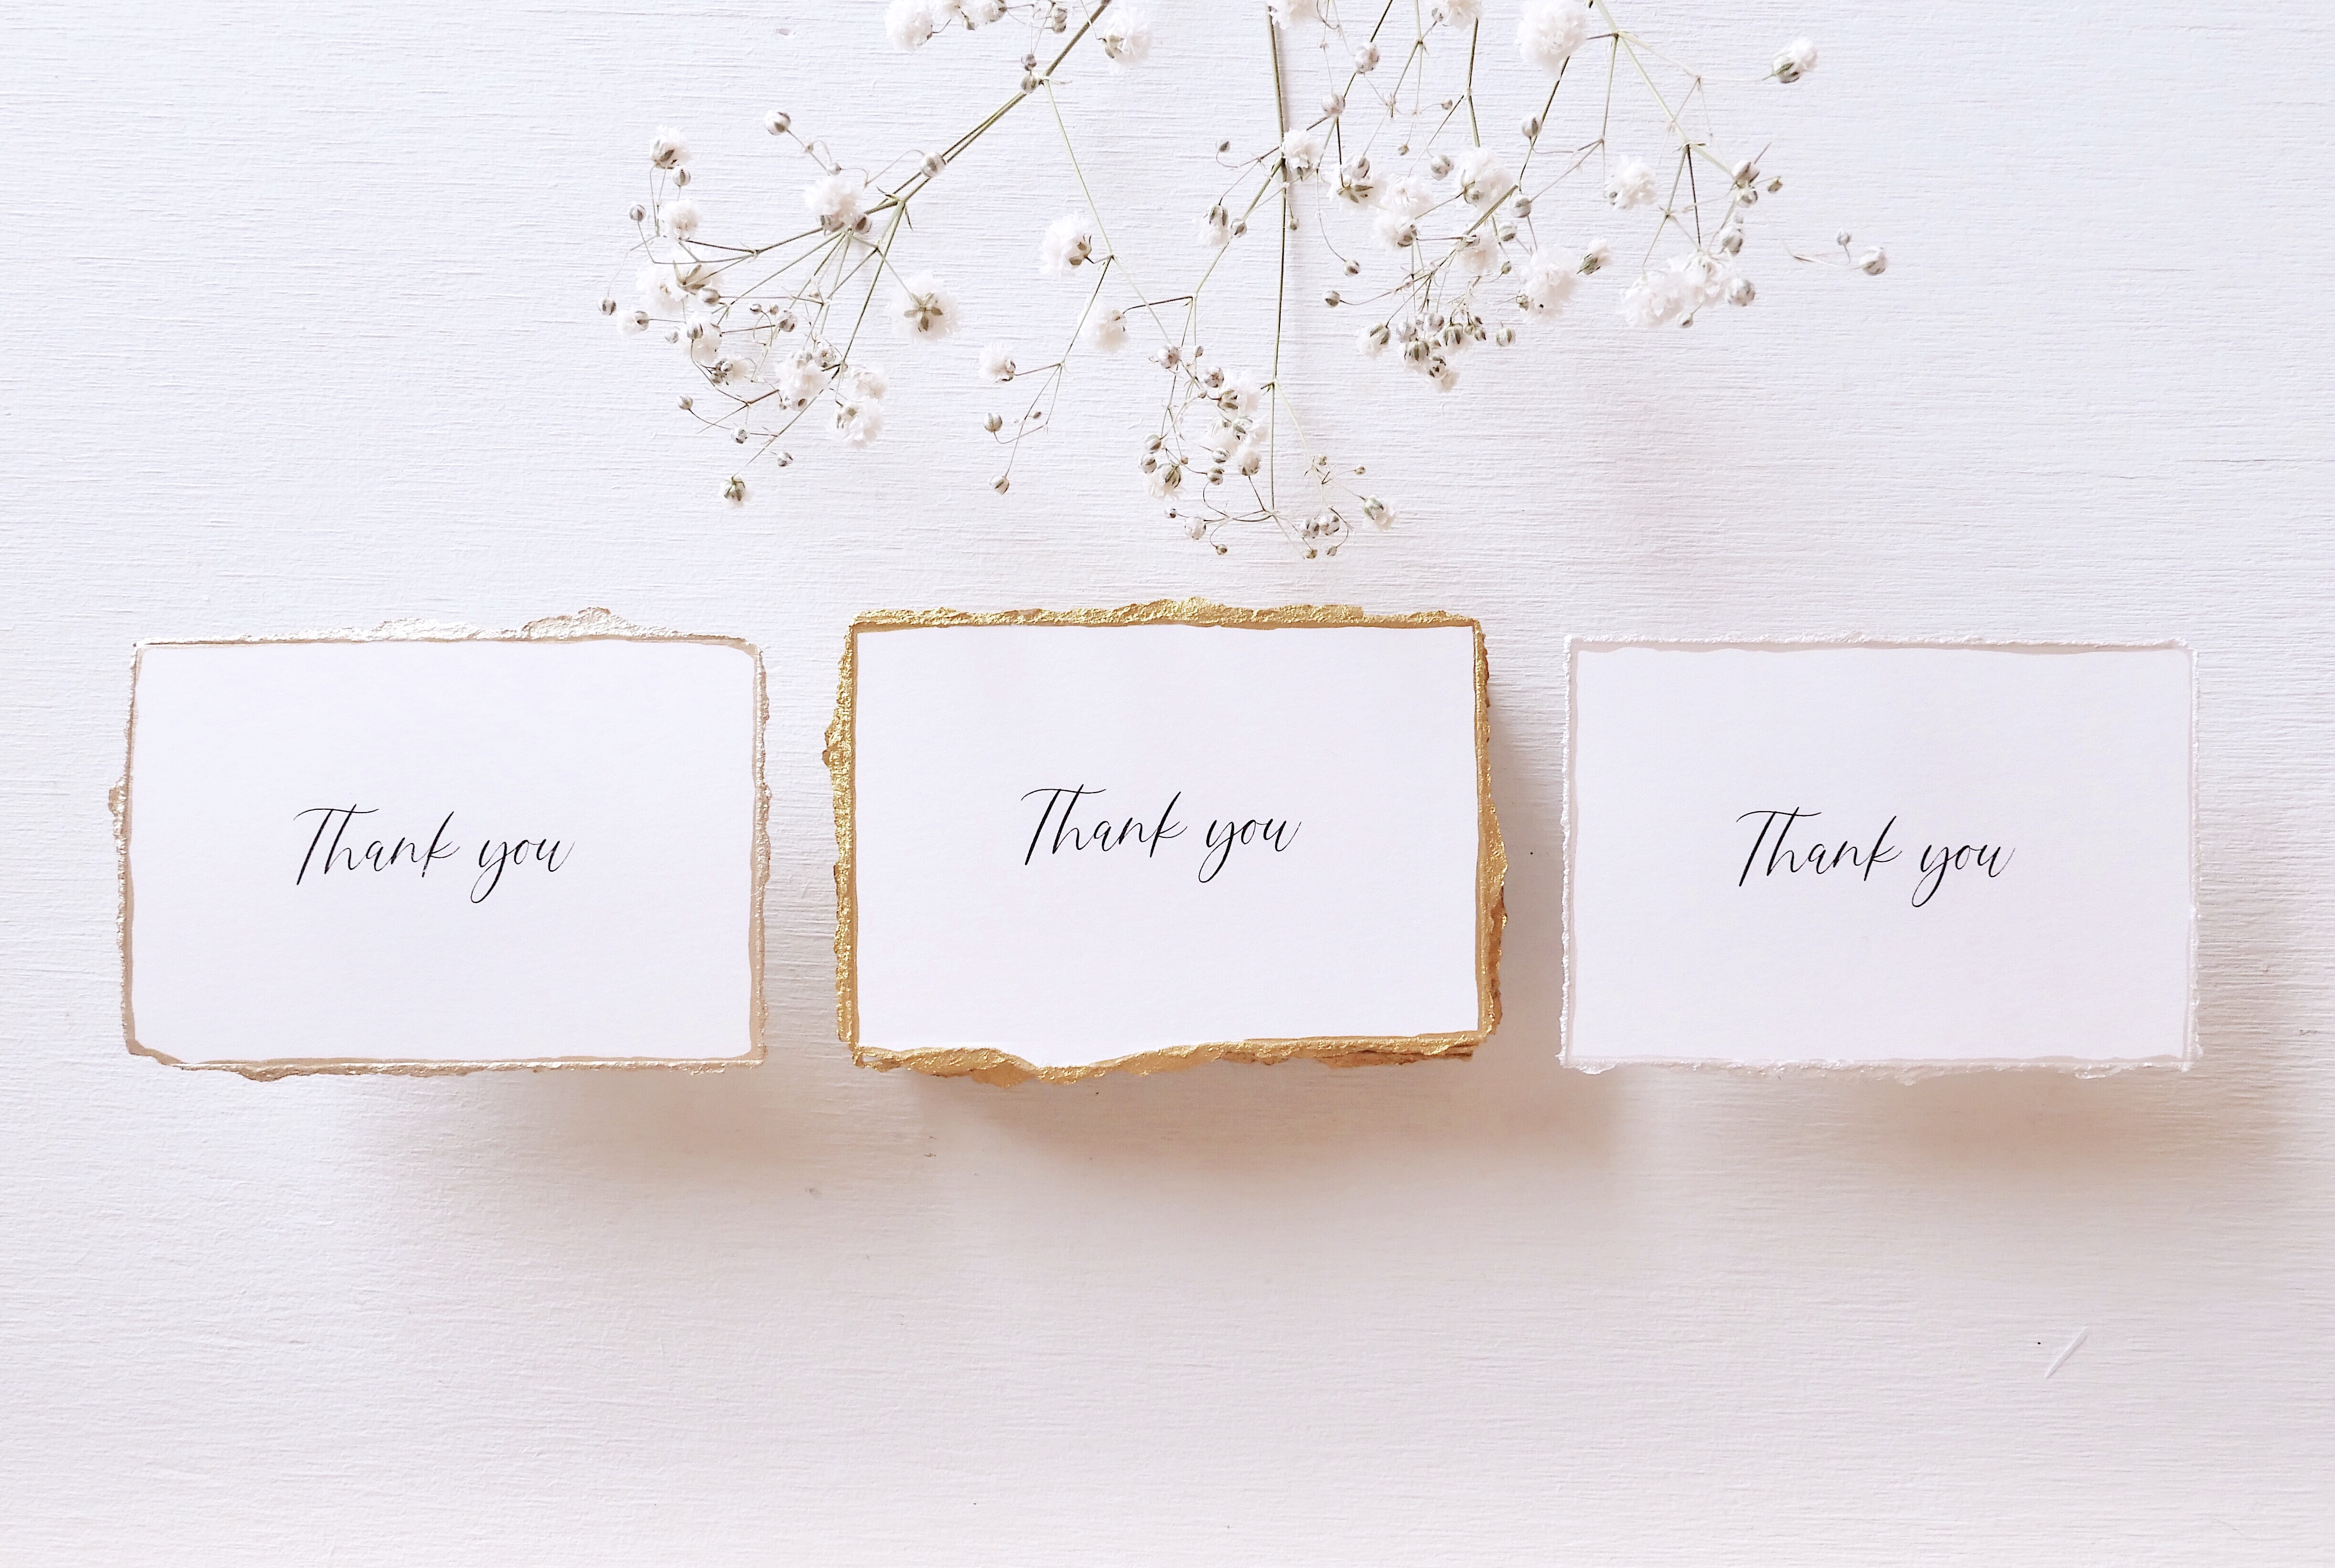 Thank you card|縁